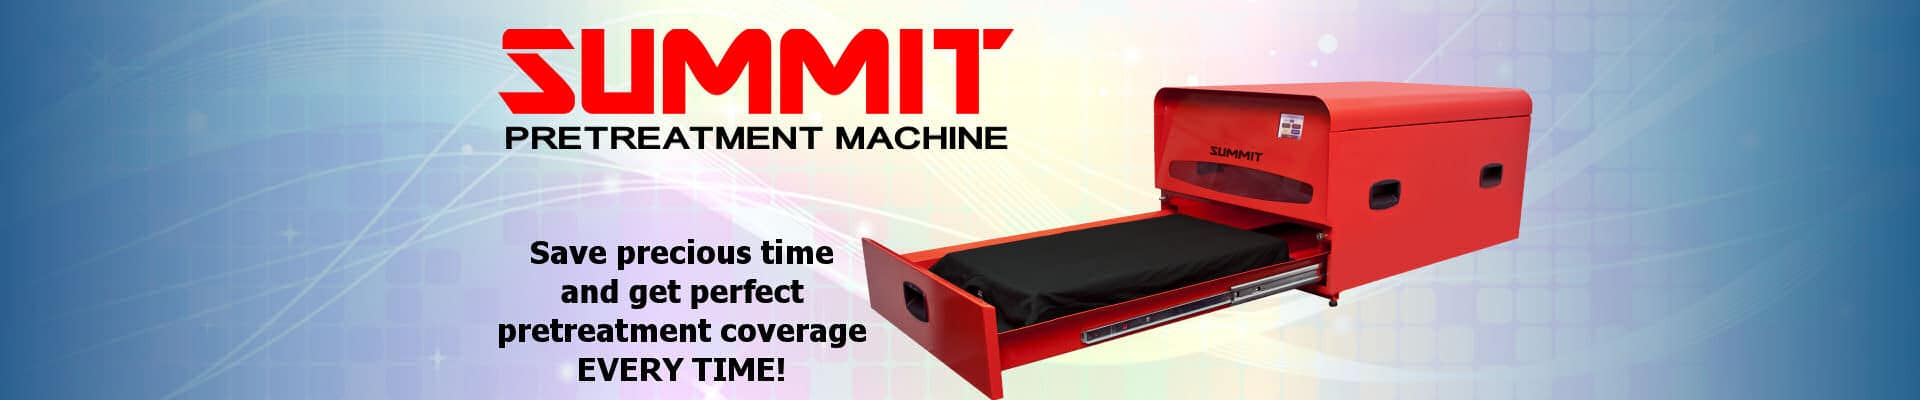 Summit DTG Pretreatment Machine